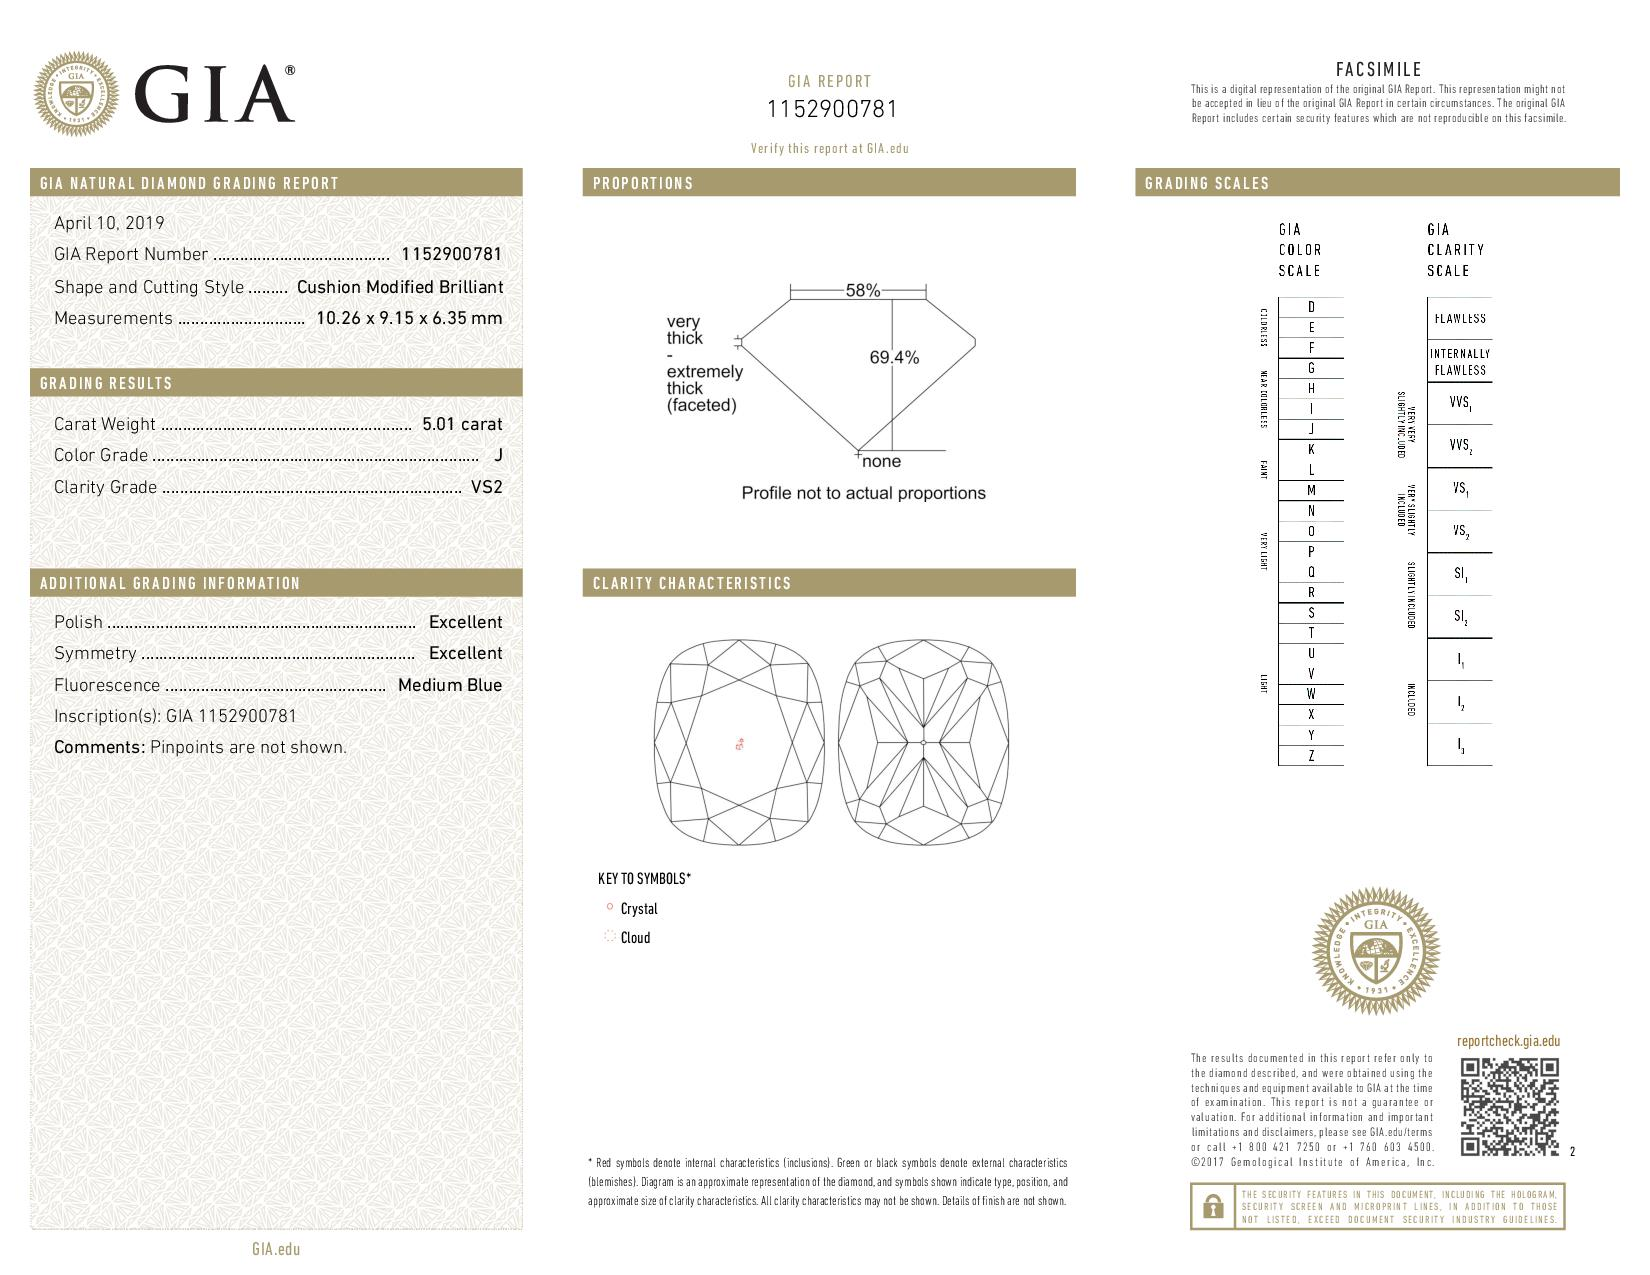 This is a 5.01 carat cushion shape, J color, VS2 clarity natural diamond accompanied by a GIA grading report.